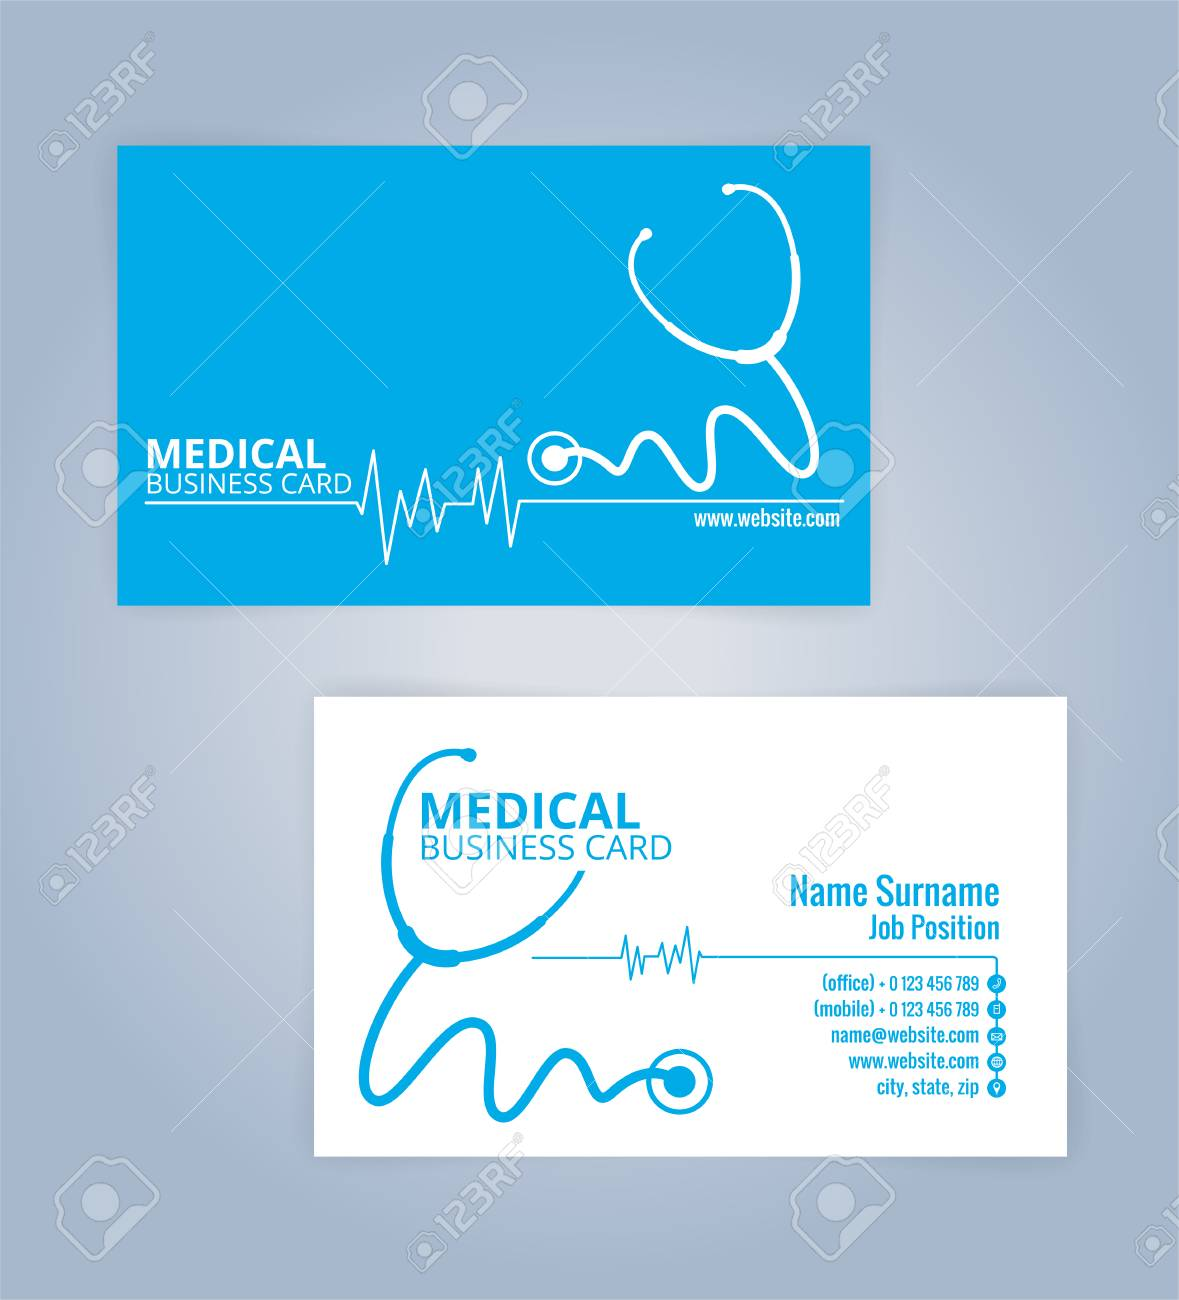 Blue and white modern business healthcare medical card template blue and white modern business healthcare medical card template illustration vector 10 stock friedricerecipe Choice Image